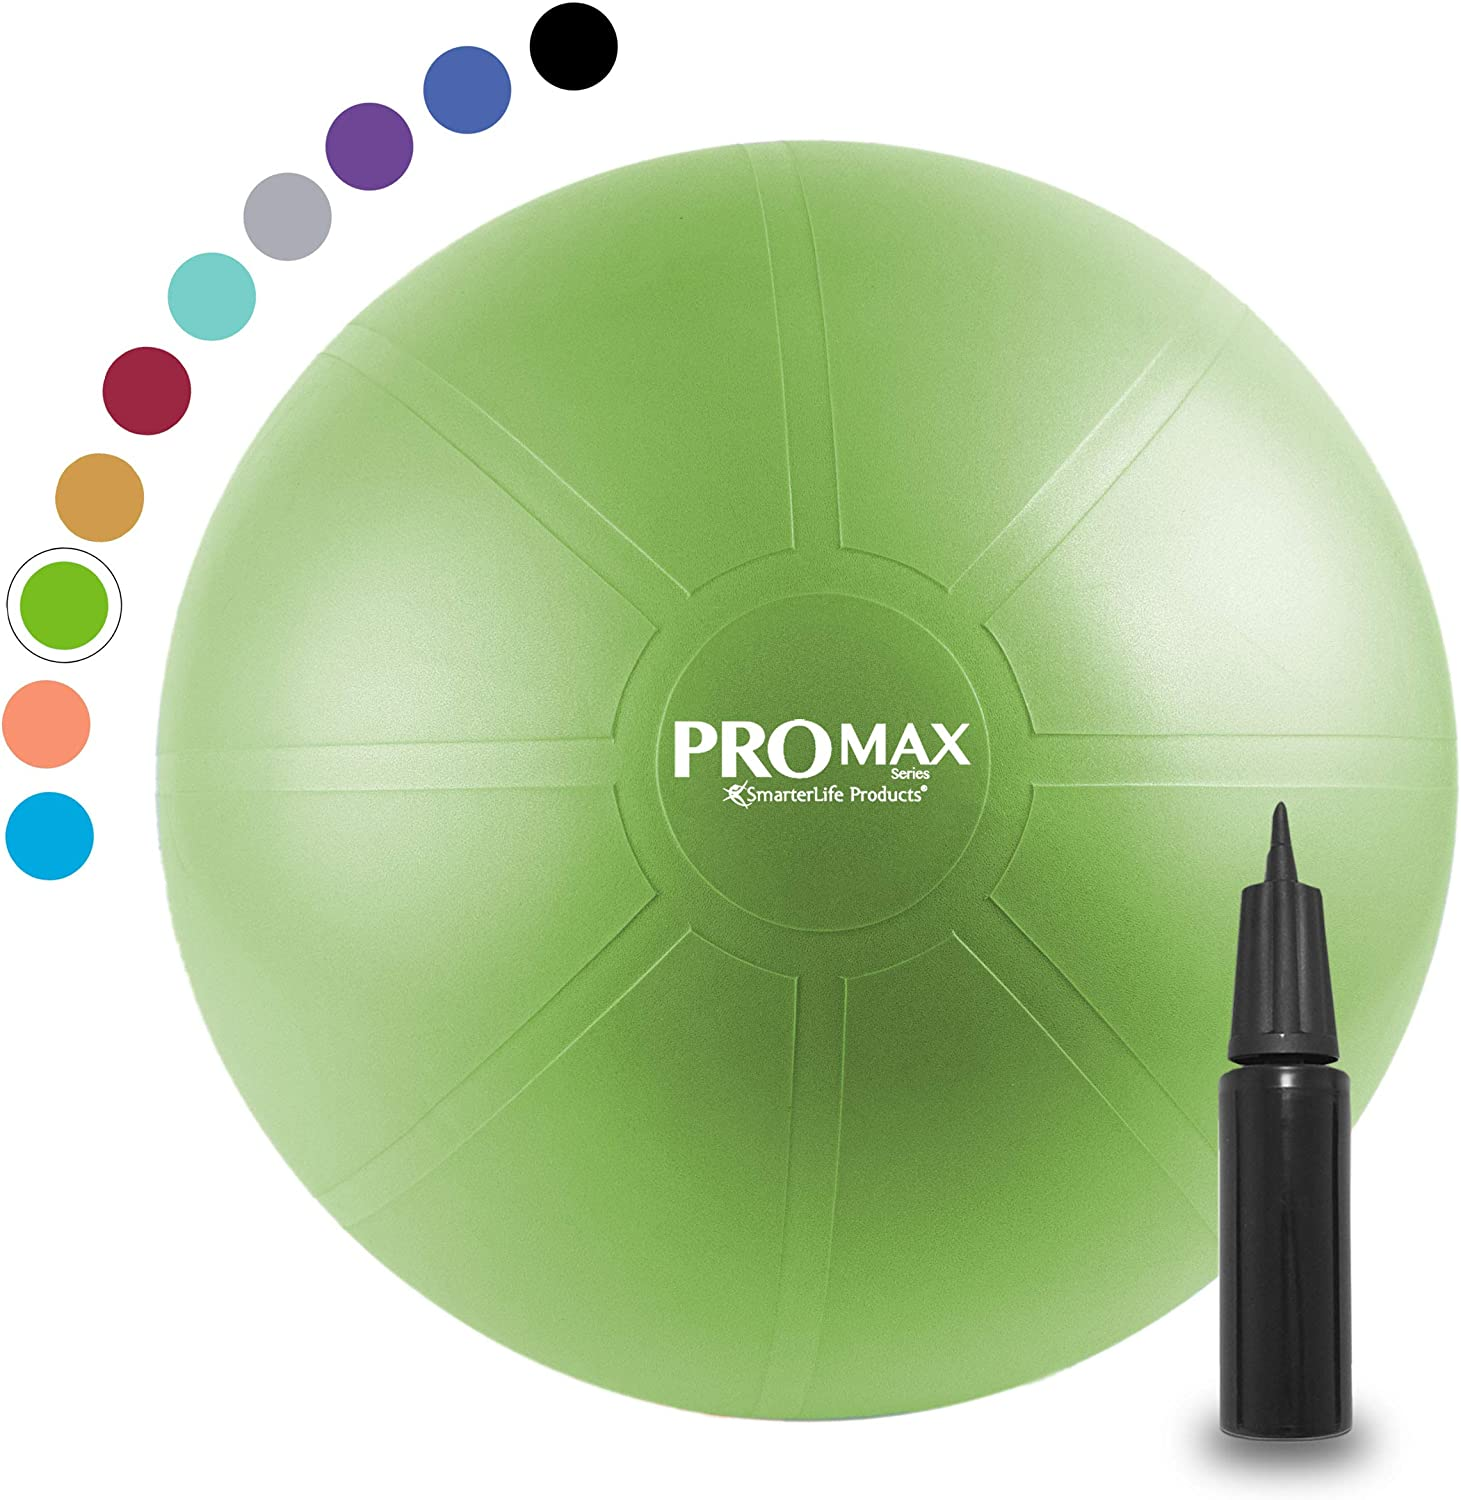 PRO MAX Exercise Ball by SmarterLife - Professional Grade Extra Thick Yoga Ball for Balance, Stability, Fitness, Pilates, Birthing, Therapy, Office Ball Chair, Flexible Seating